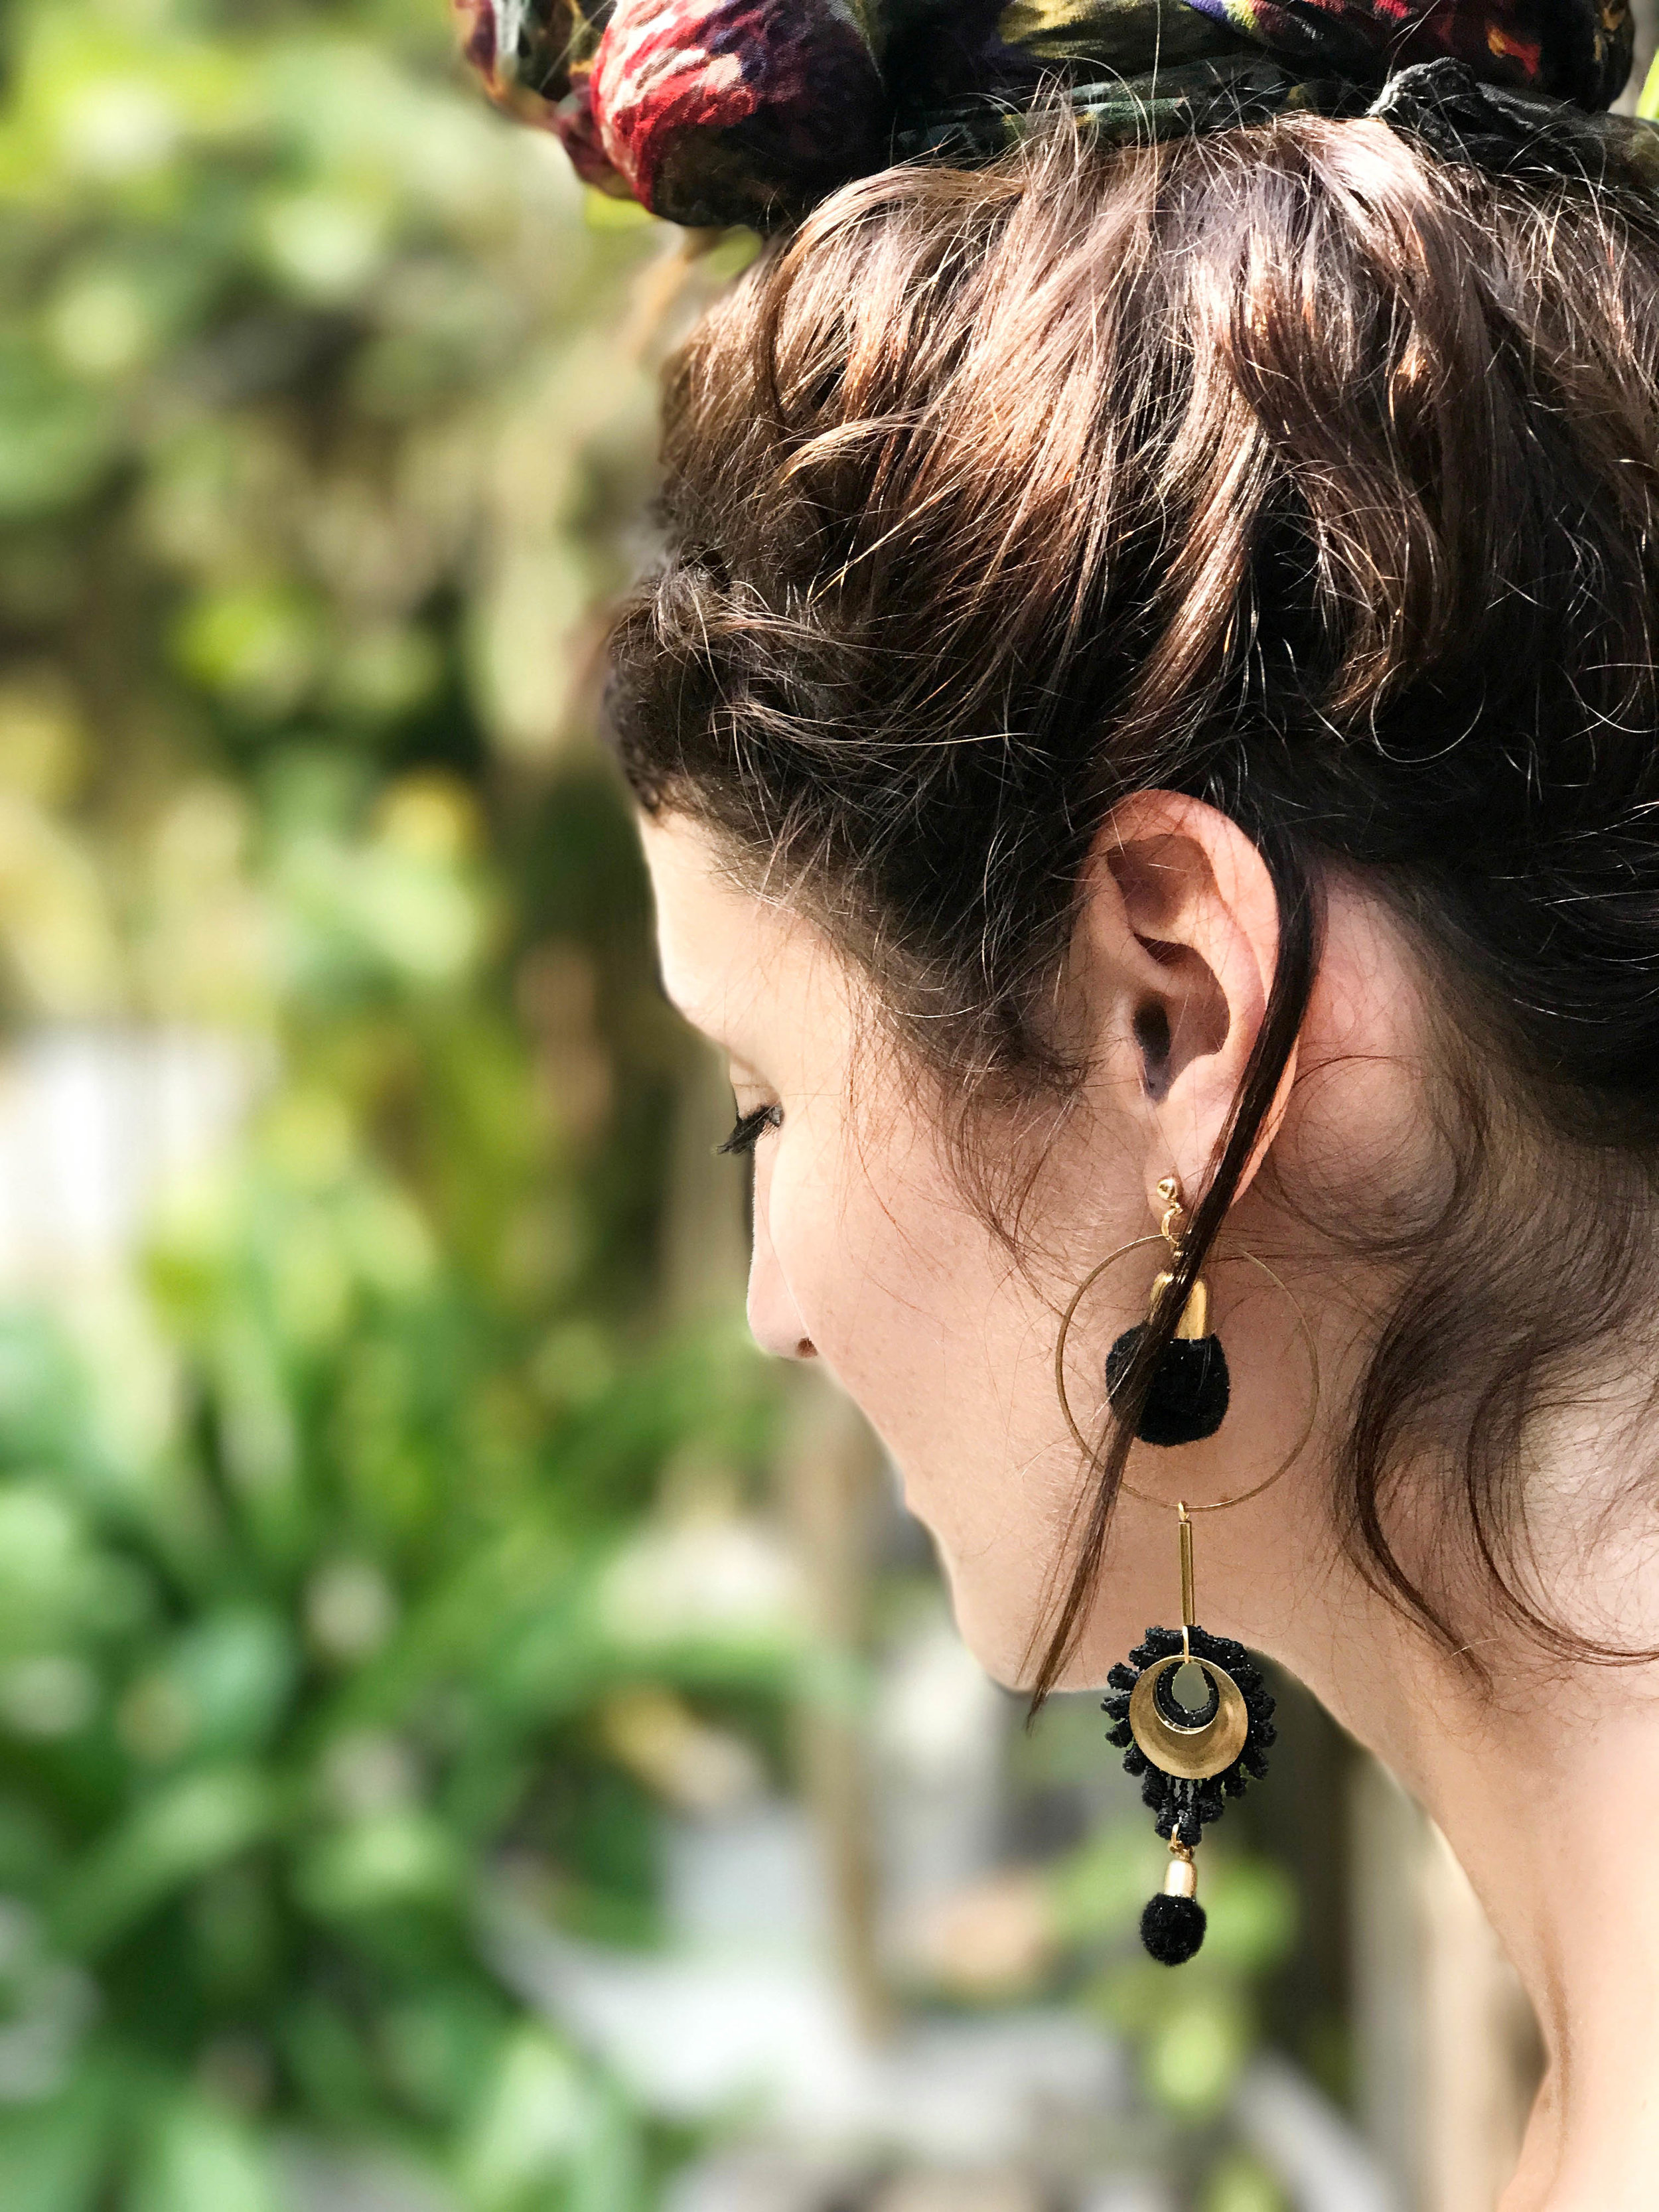 Artillery earrings (click here for details)